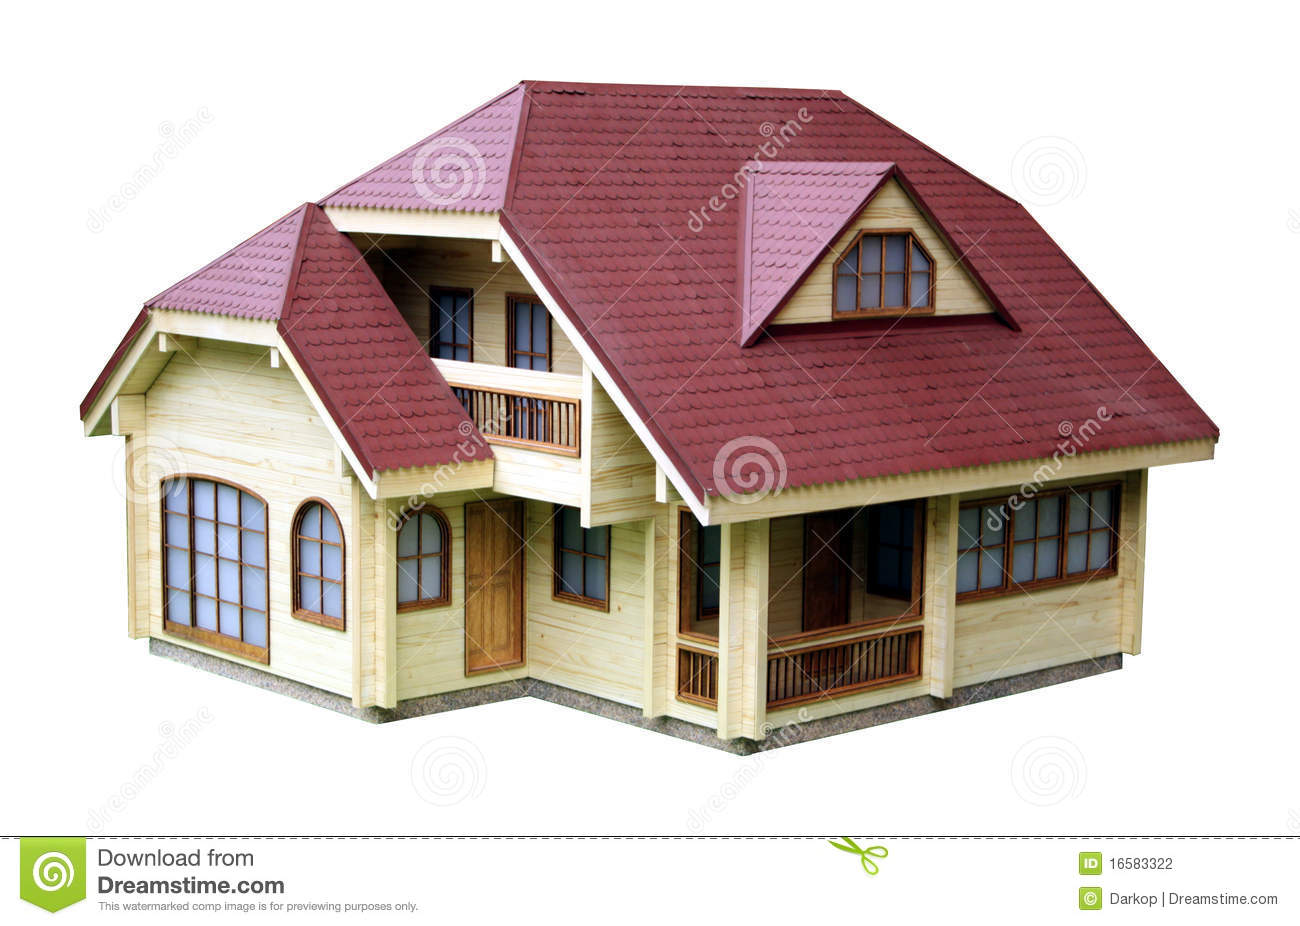 House model stock photography image 16583322 for Houses models